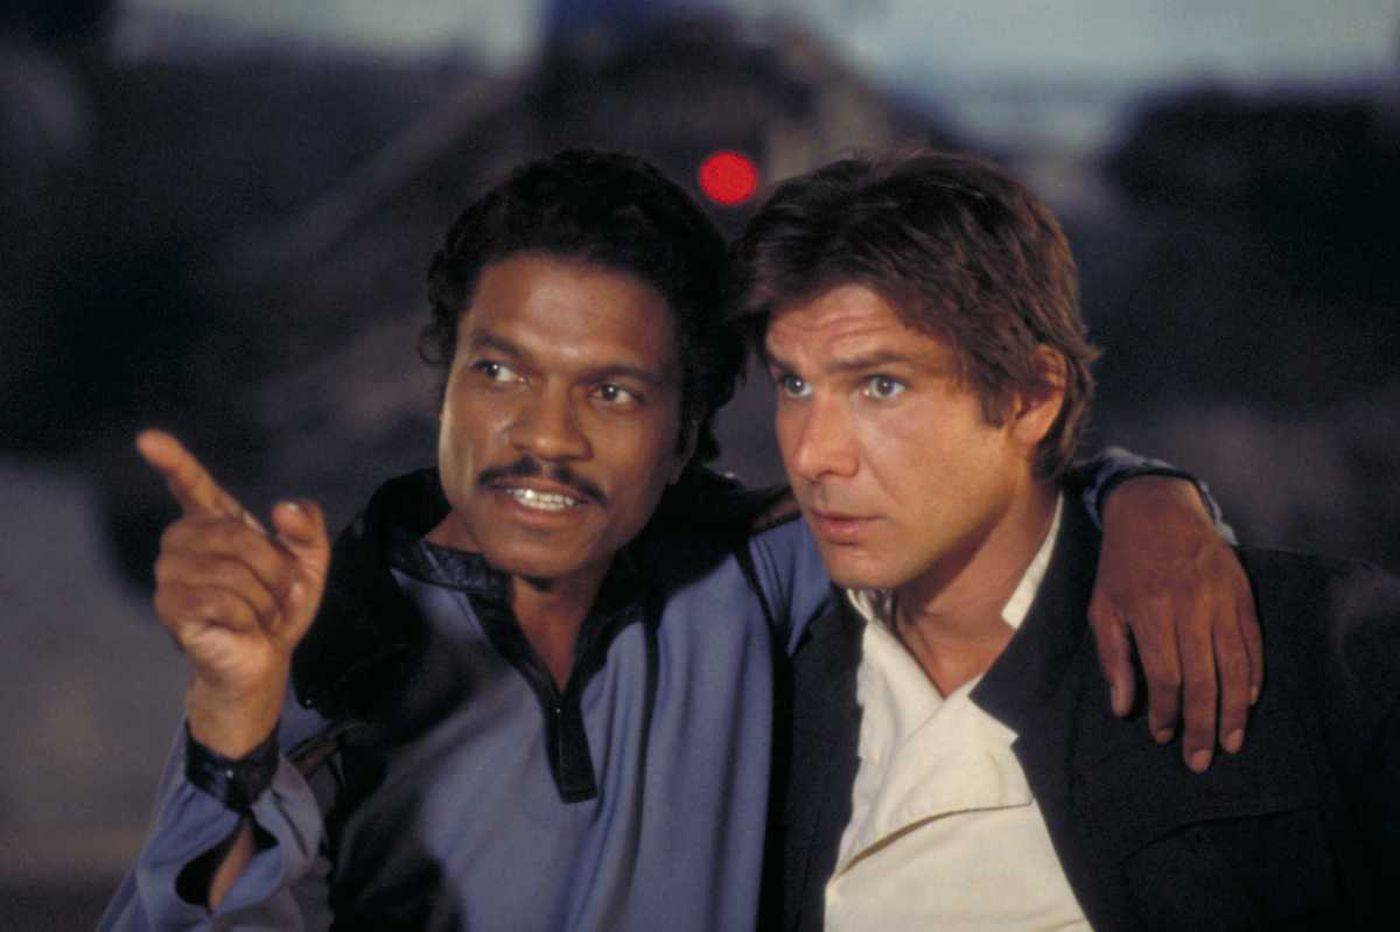 Lando Calrissian speaks!: Billy Dee Williams knows 'Brian's Song' still makes you cry